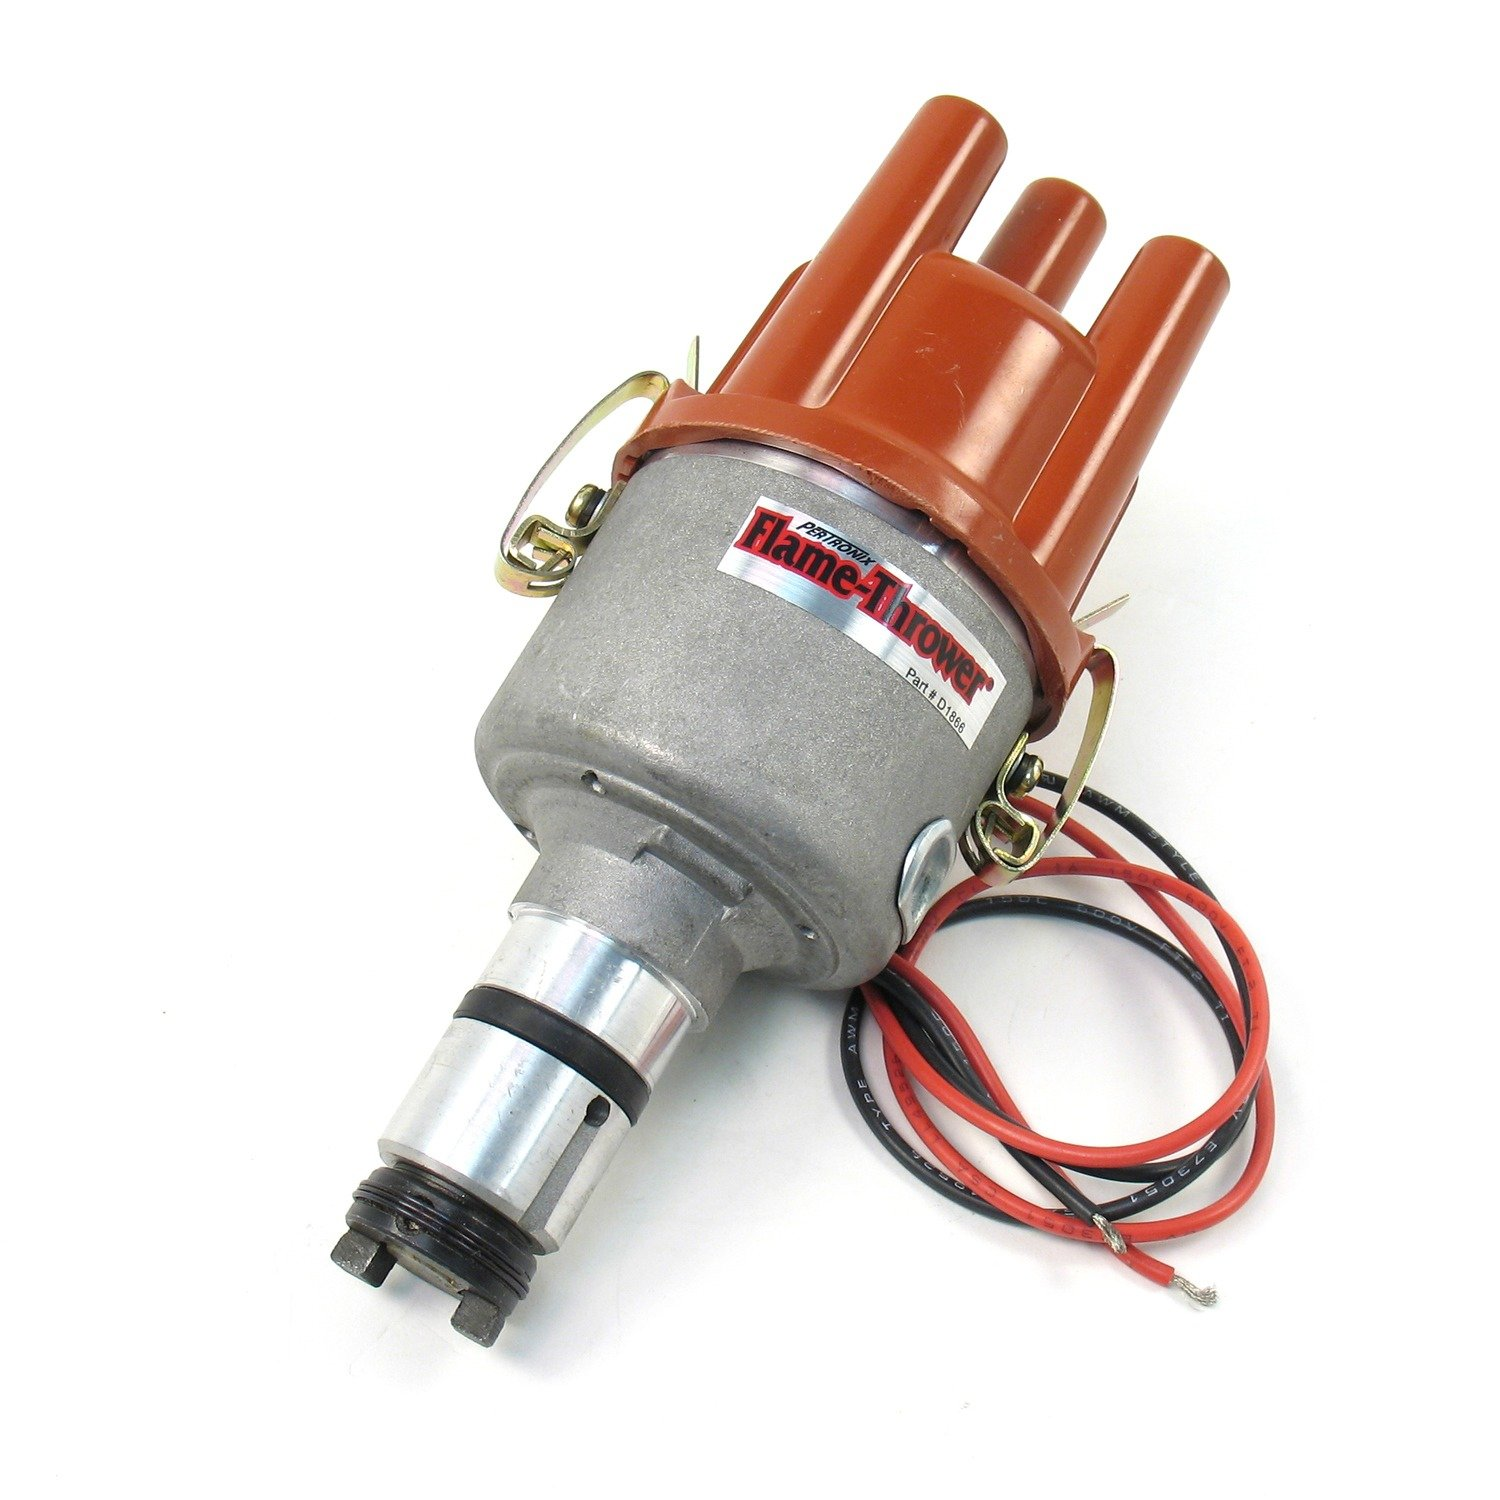 Pertronix D186604 Flame-Thrower VW Type 1 Engine Plug and Play Non Vacuum Cast Electronic Distributor with Ignitor Technology